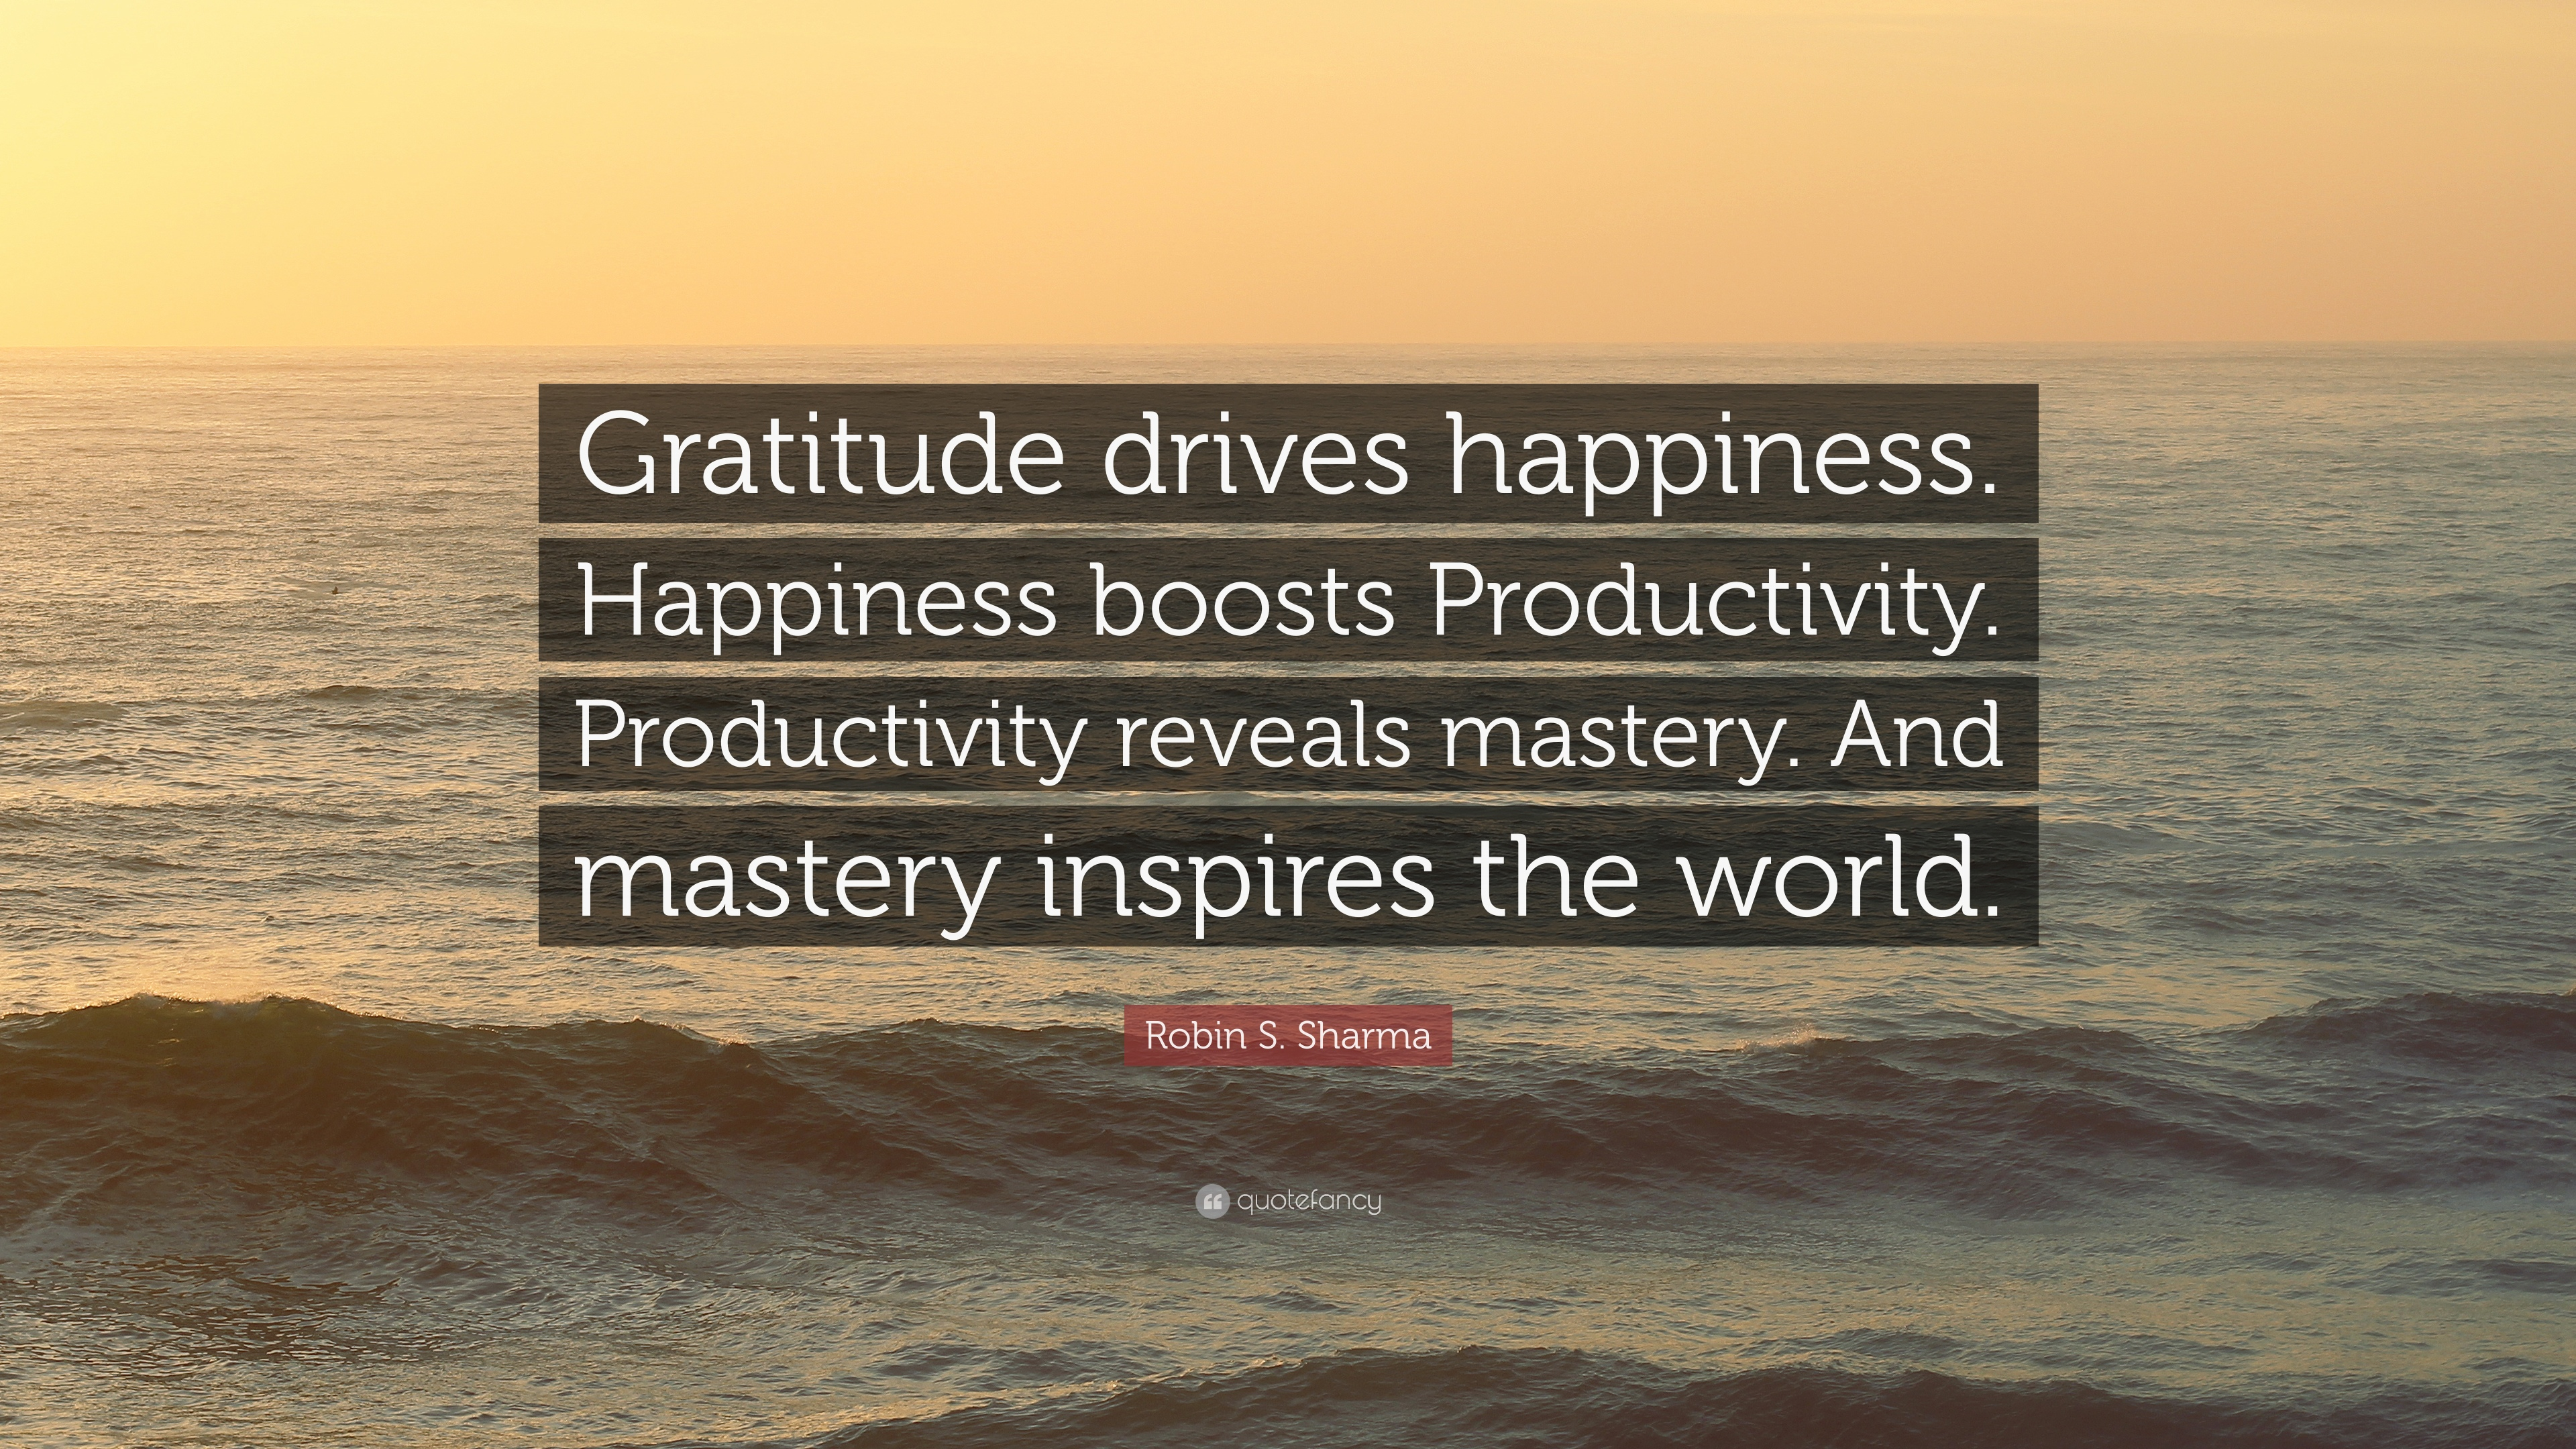 Charming Robin S. Sharma Quote: U201cGratitude Drives Happiness. Happiness Boosts  Productivity. Productivity